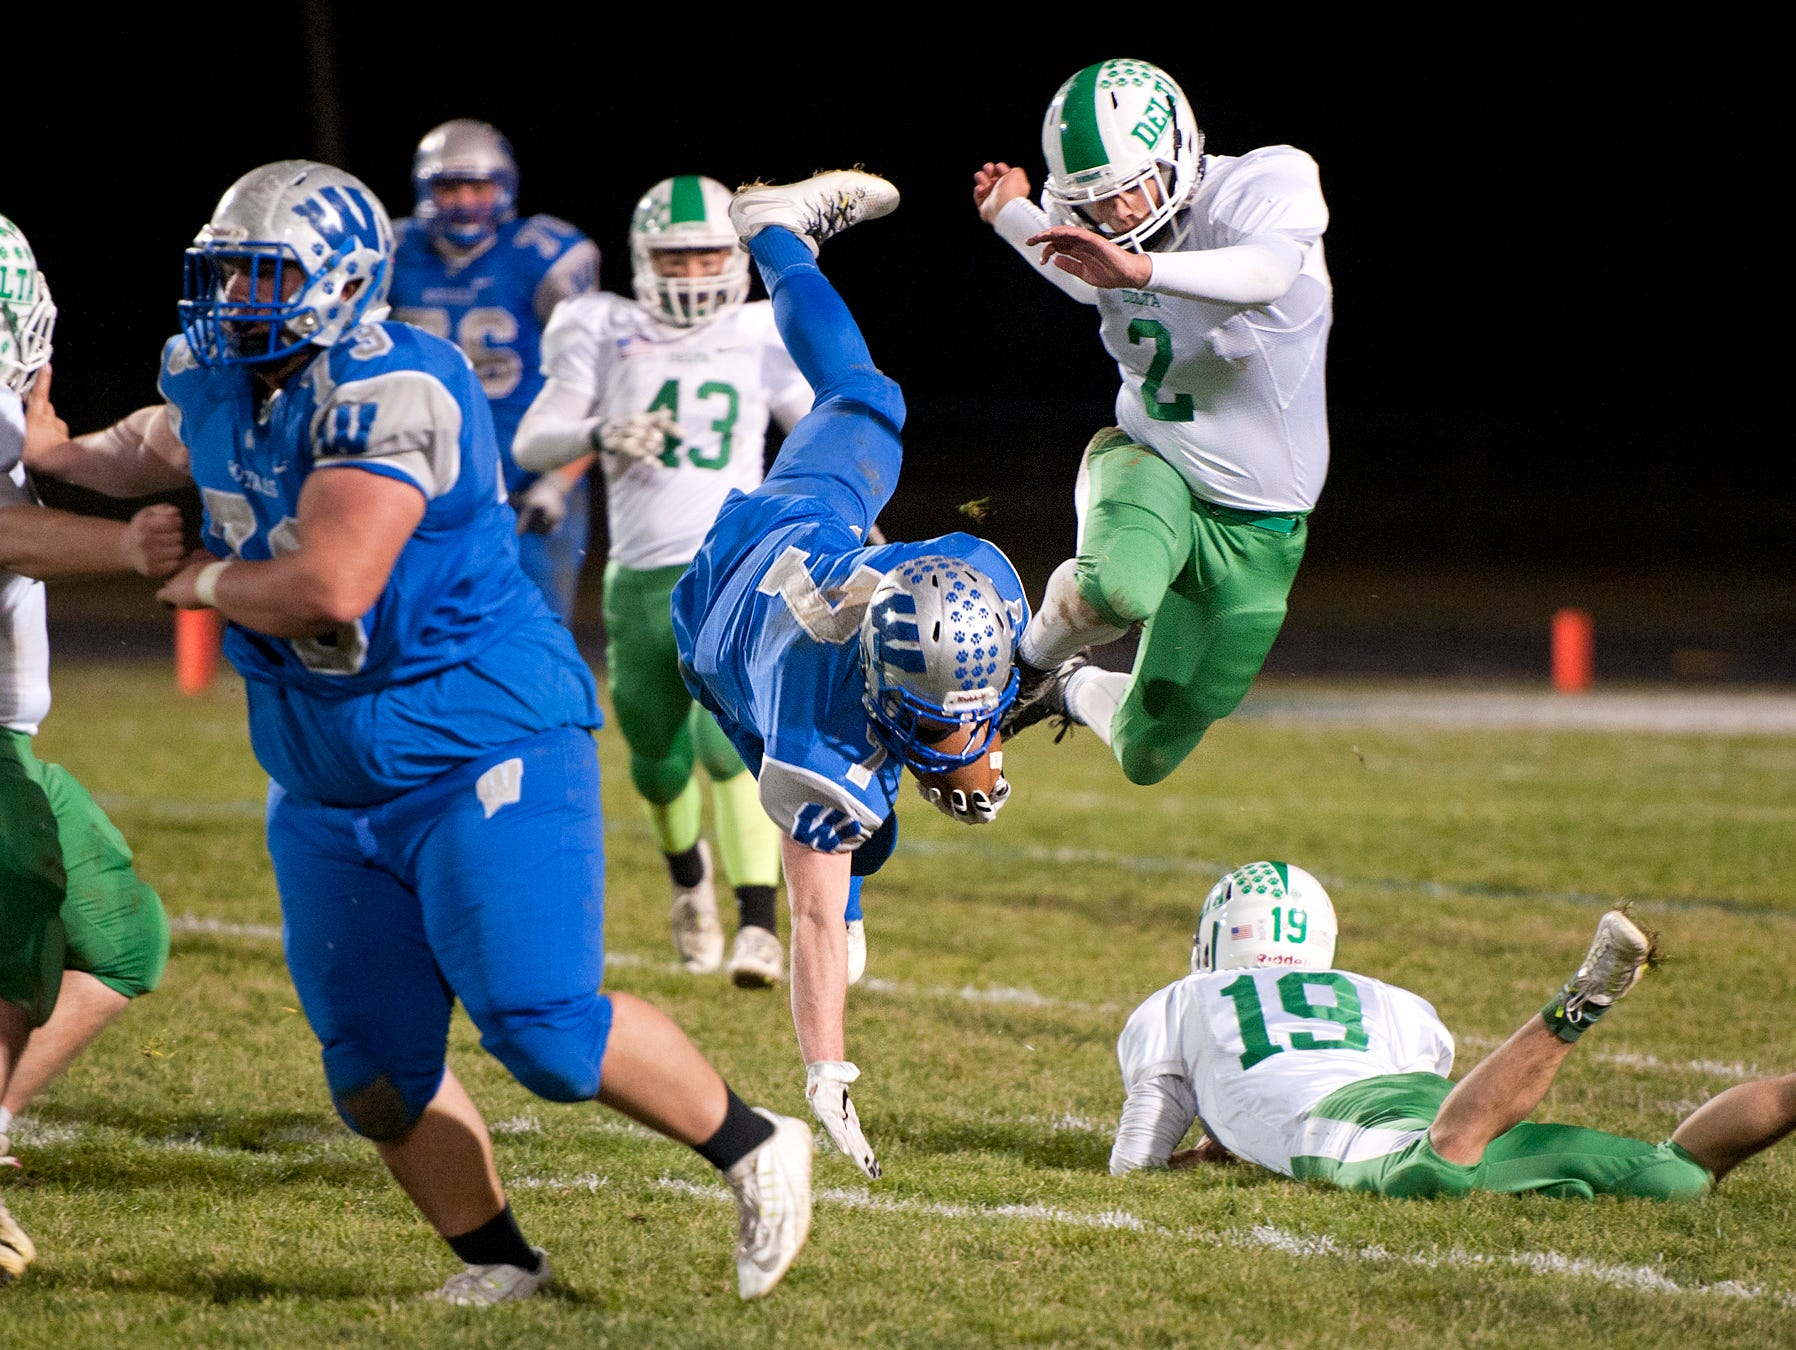 Wynford's Nick Looker is tripped up by Delta's defense.